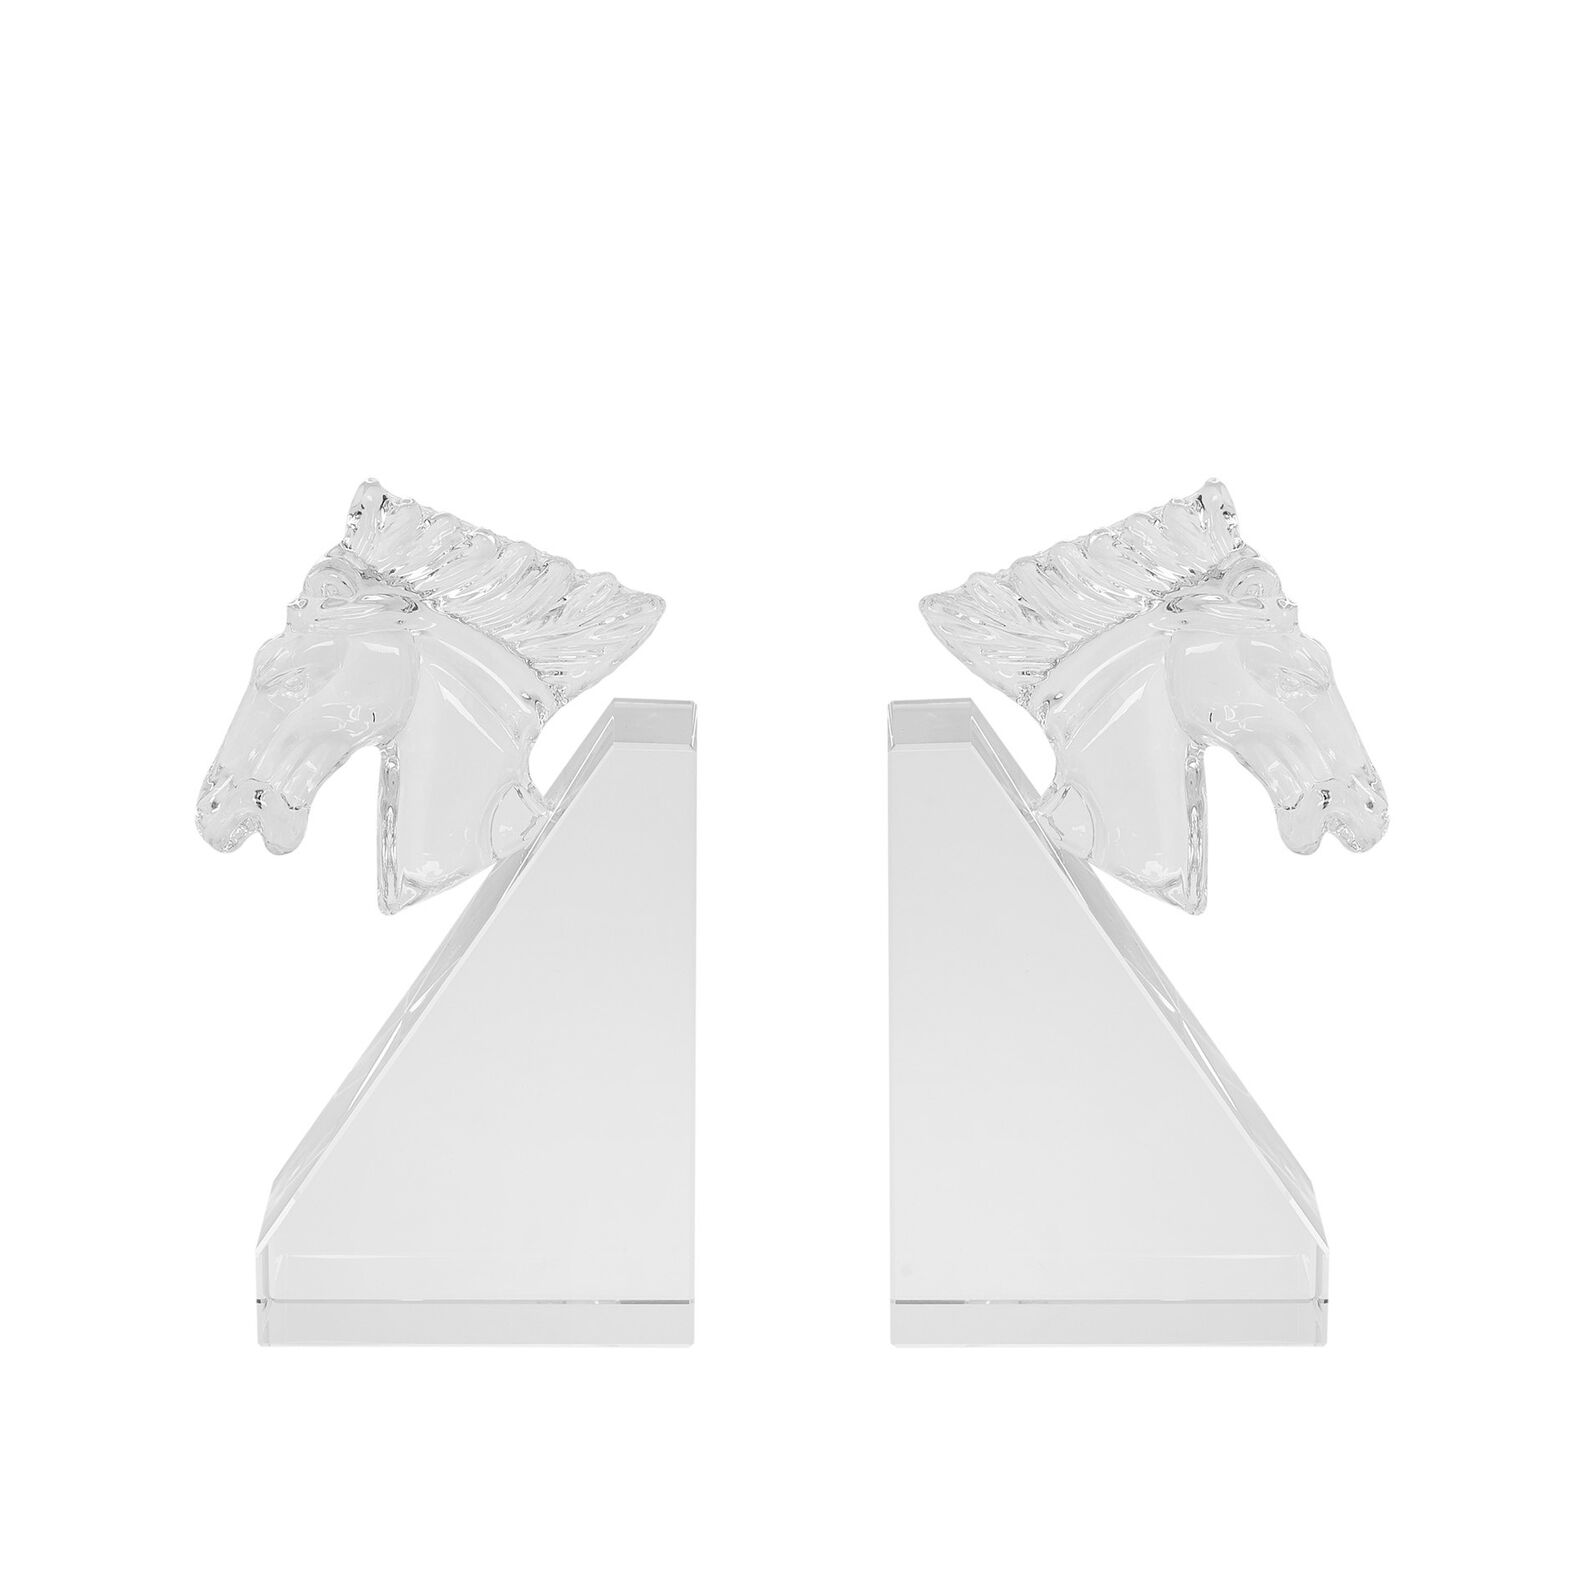 Set of 2 bookends in crystal